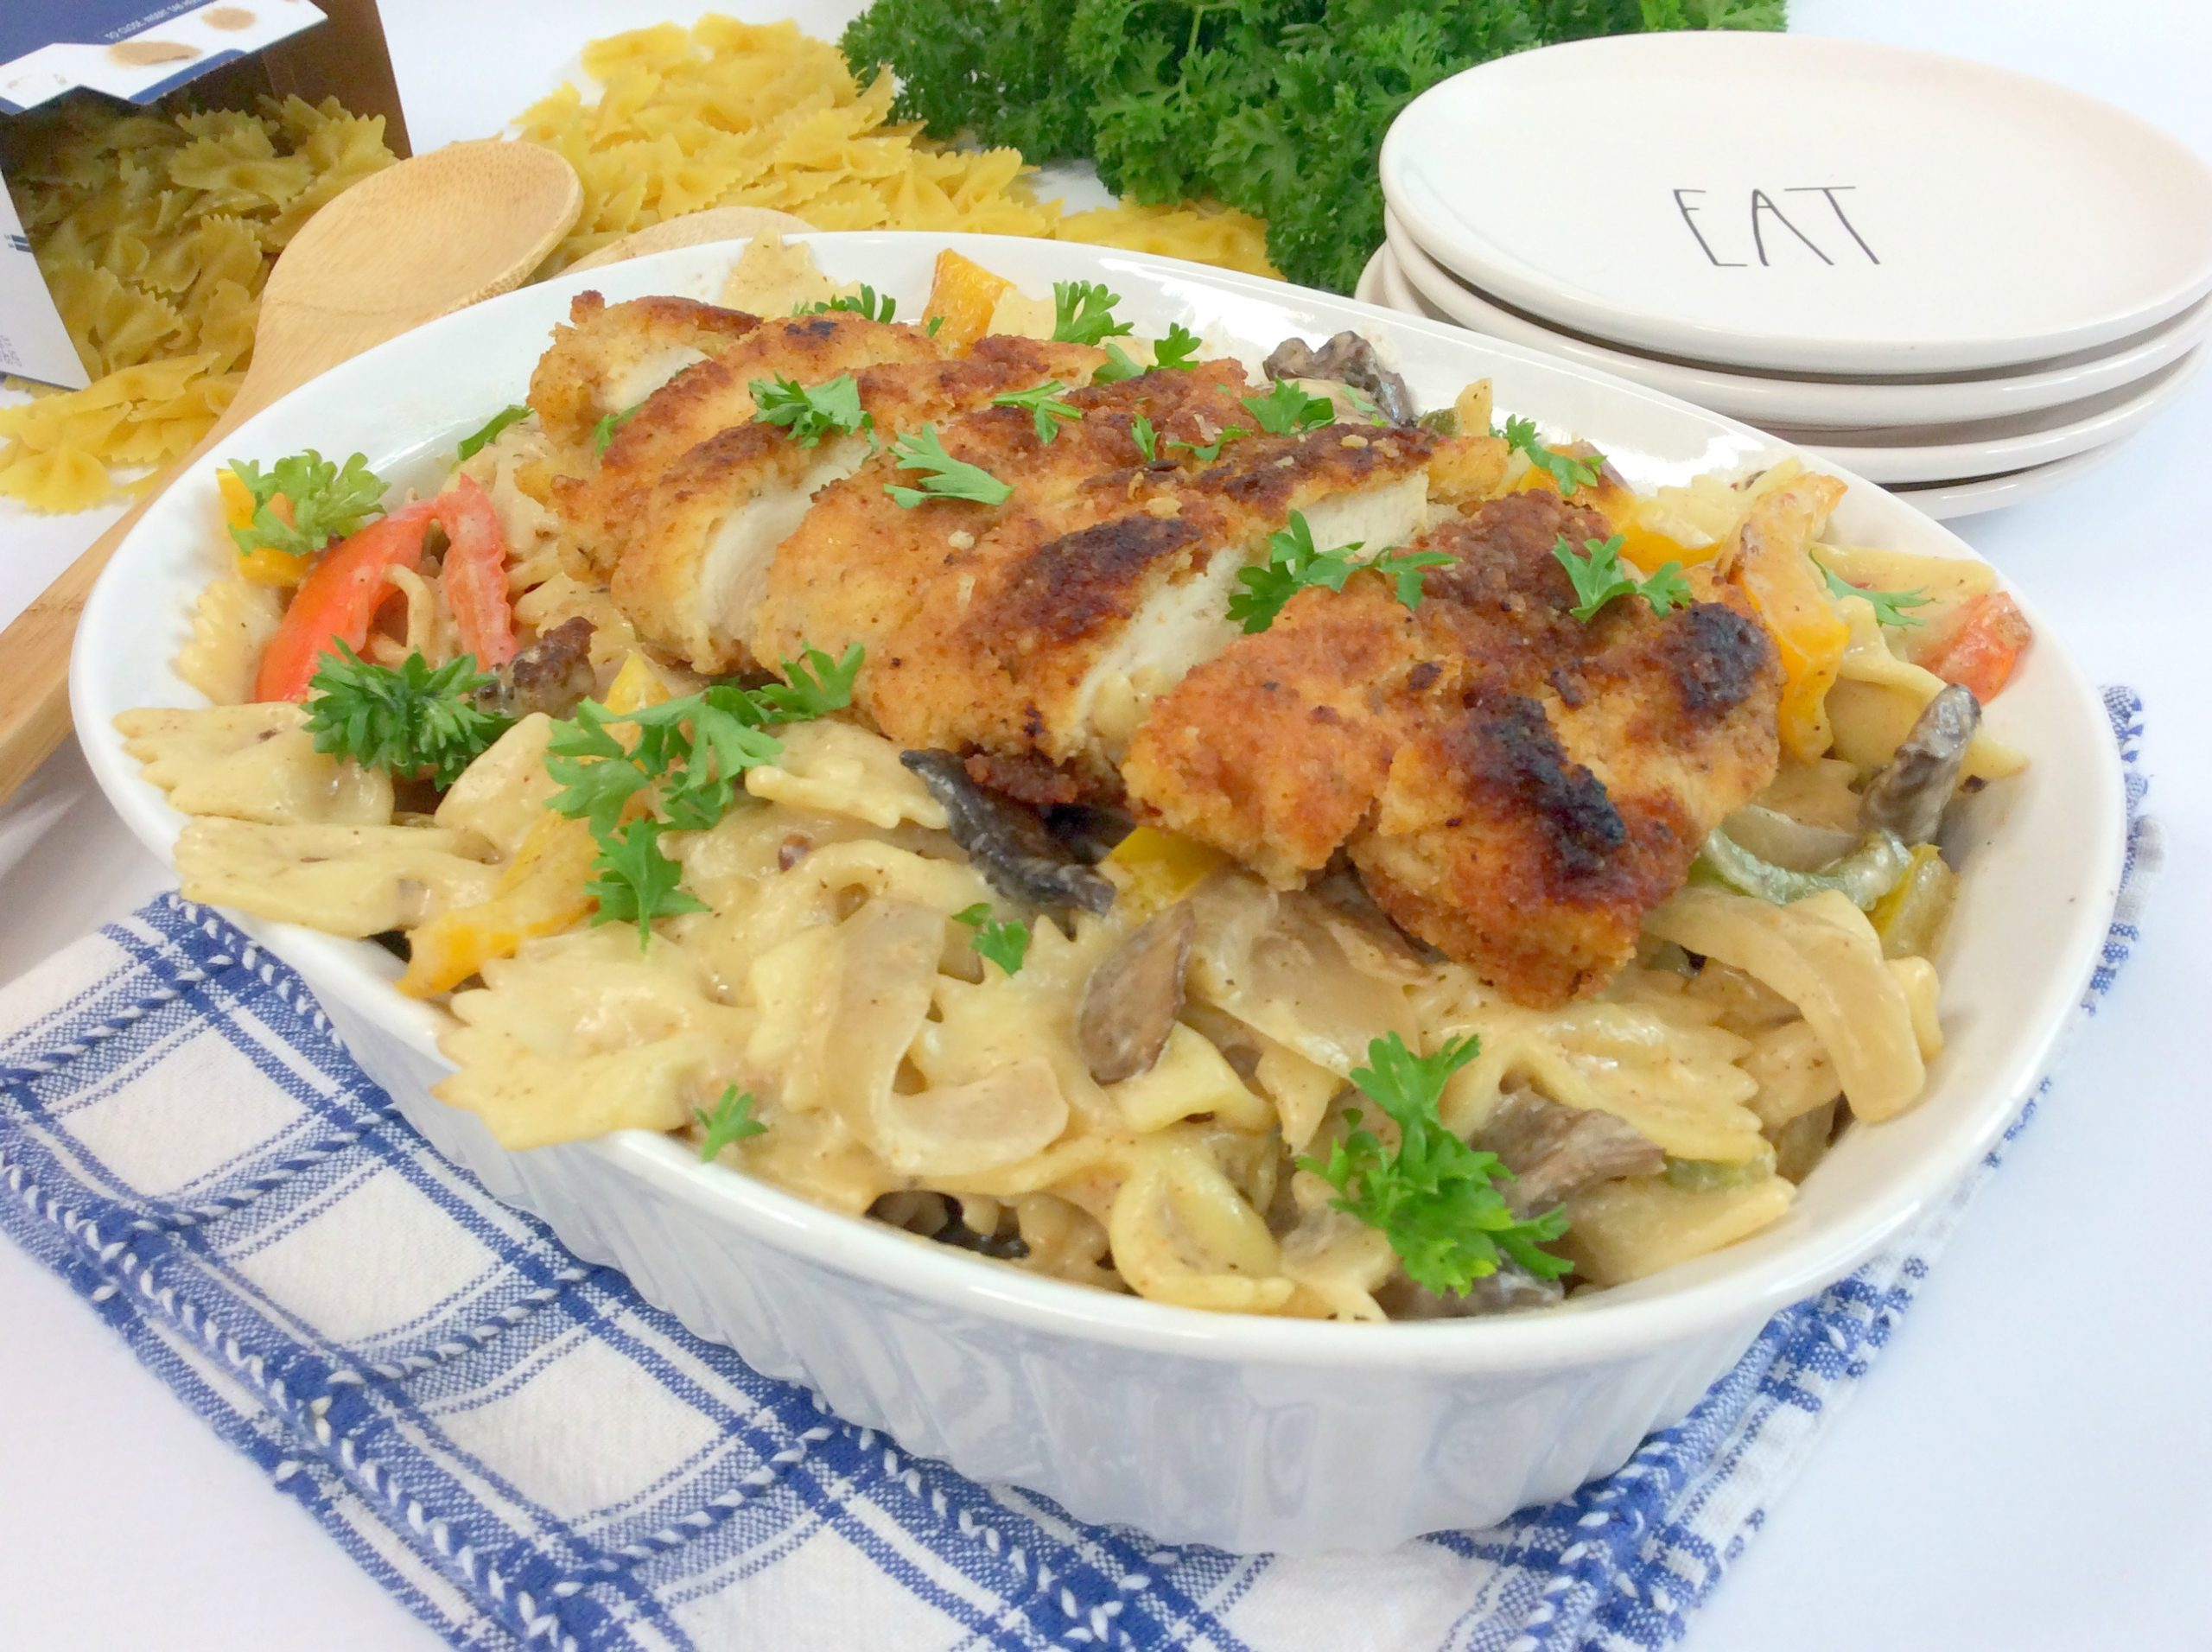 The chicken pasta in a dish on top of a cloth.